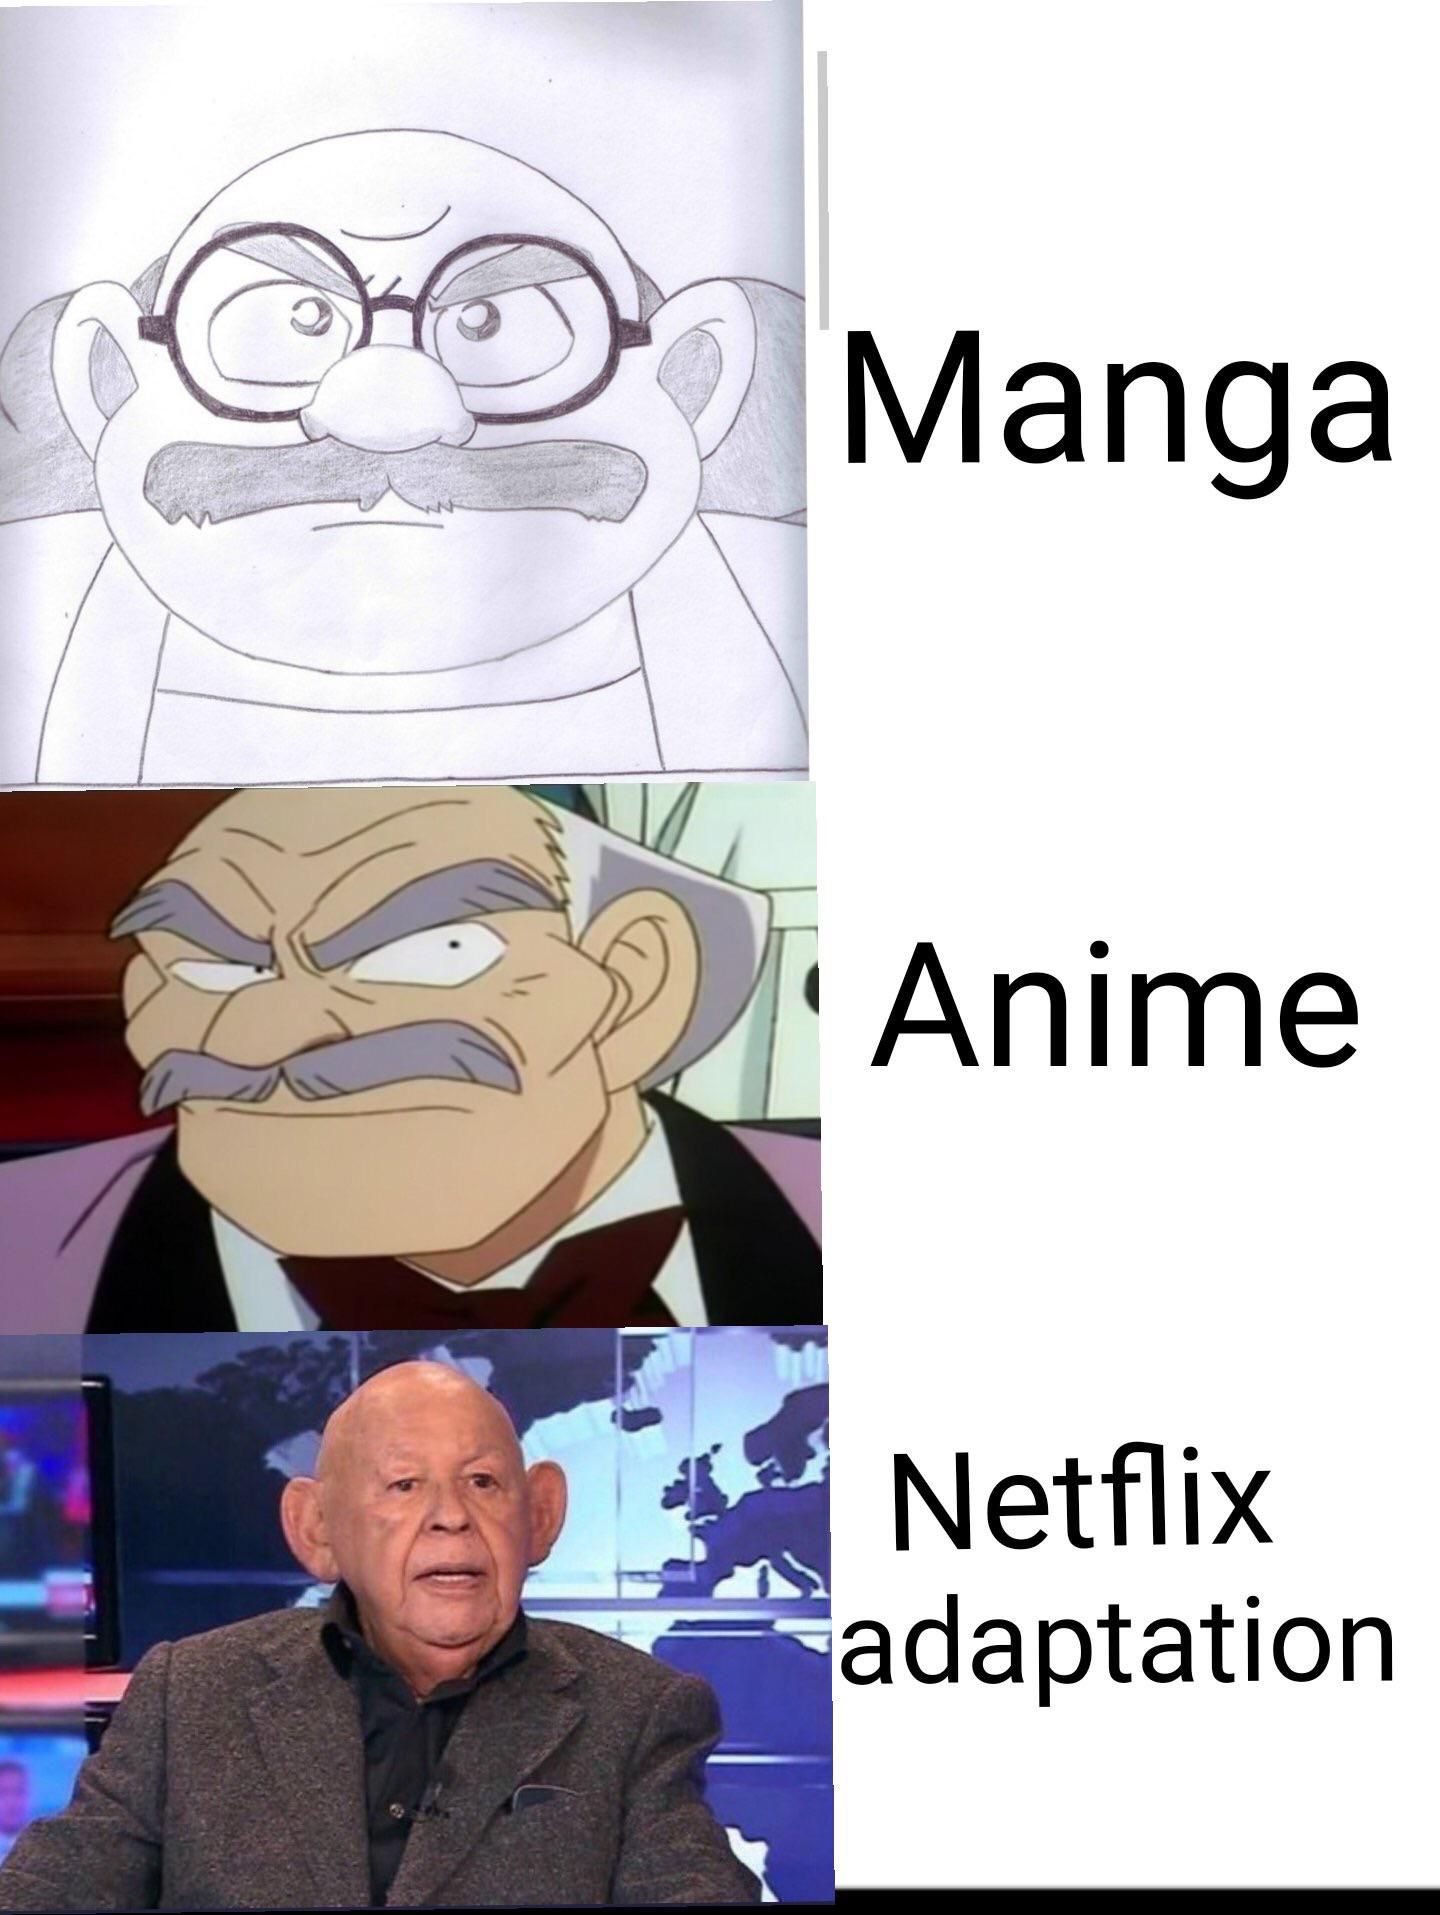 the netflix adaptation (With images) Adaptations